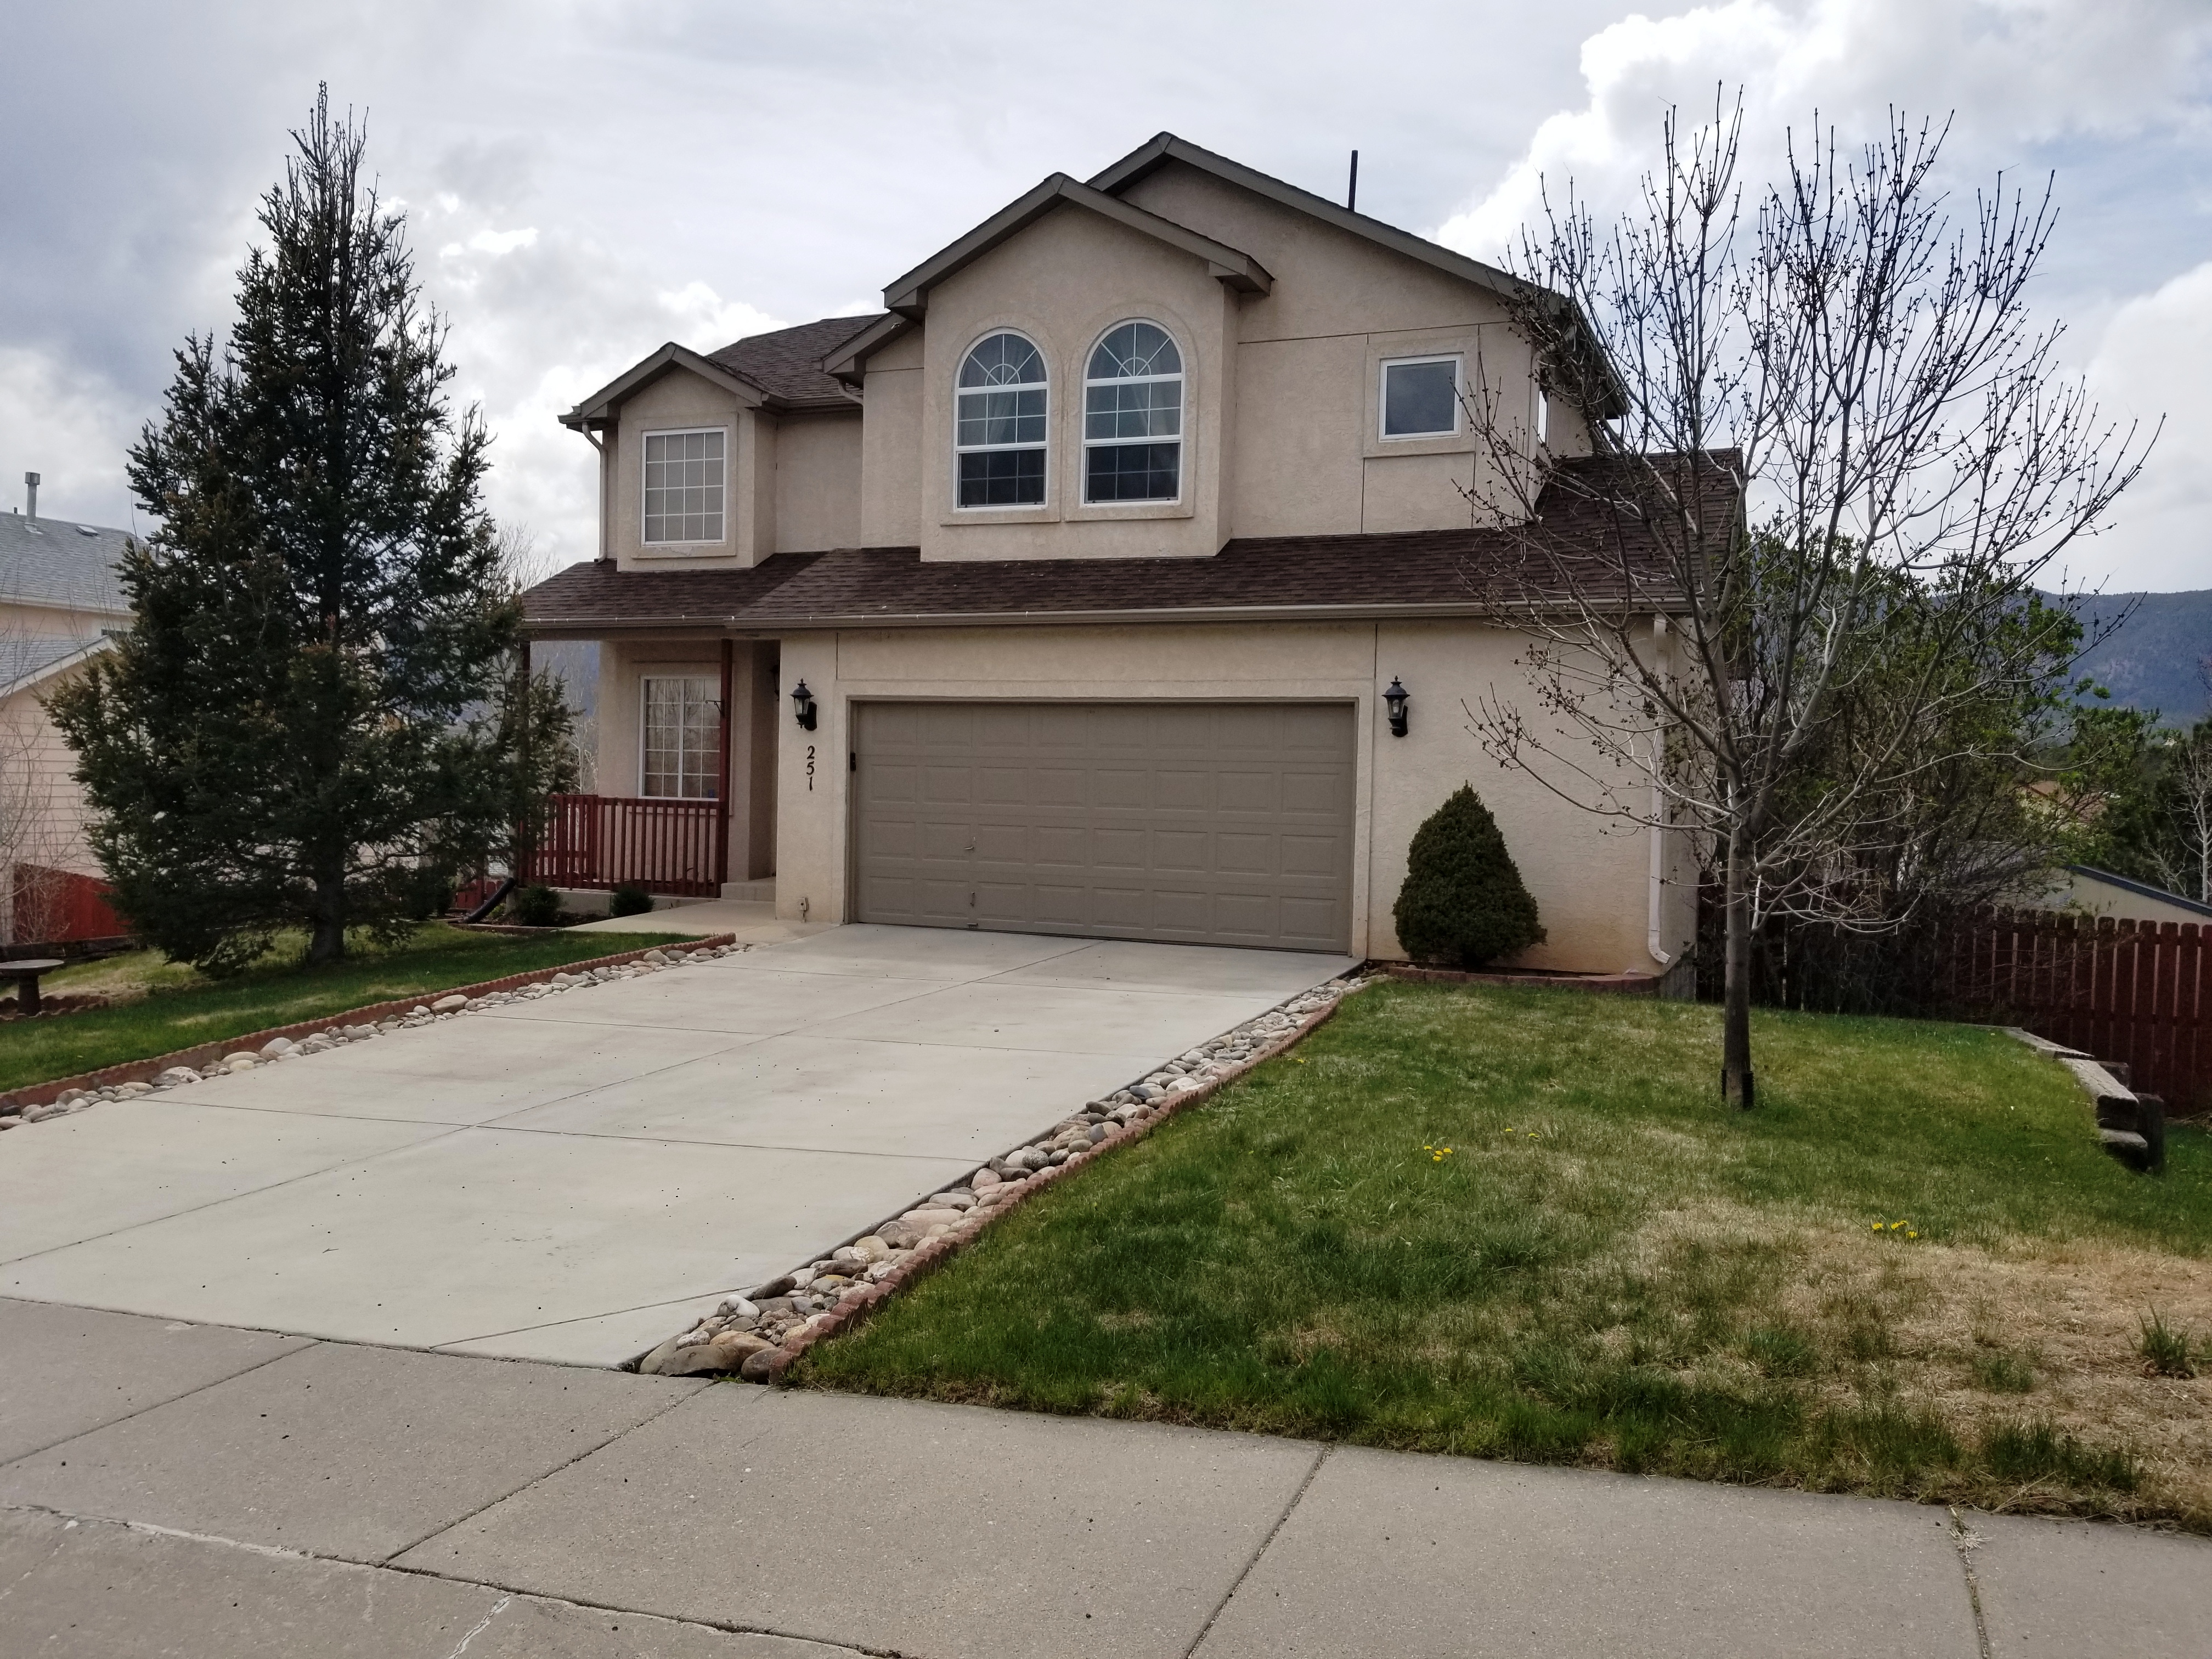 Photo of 251 Candletree Circle, Monument, CO, 80132